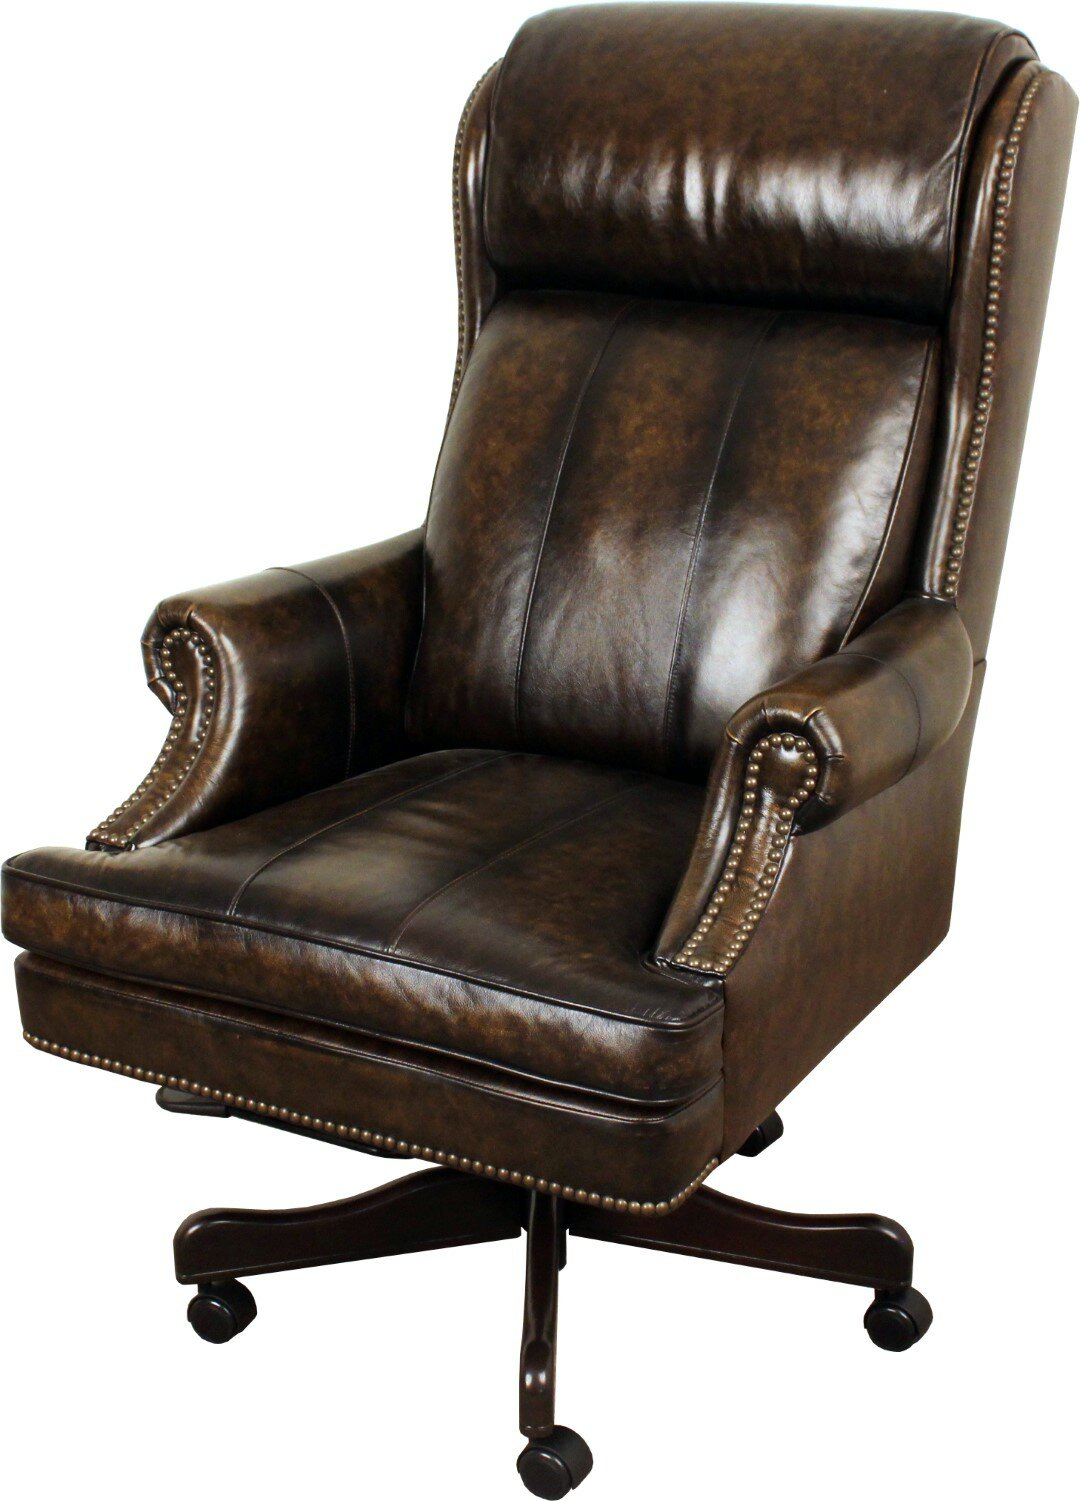 Awesome Darby Home Co Corey Leather Executive Chair U0026 Reviews | Wayfair